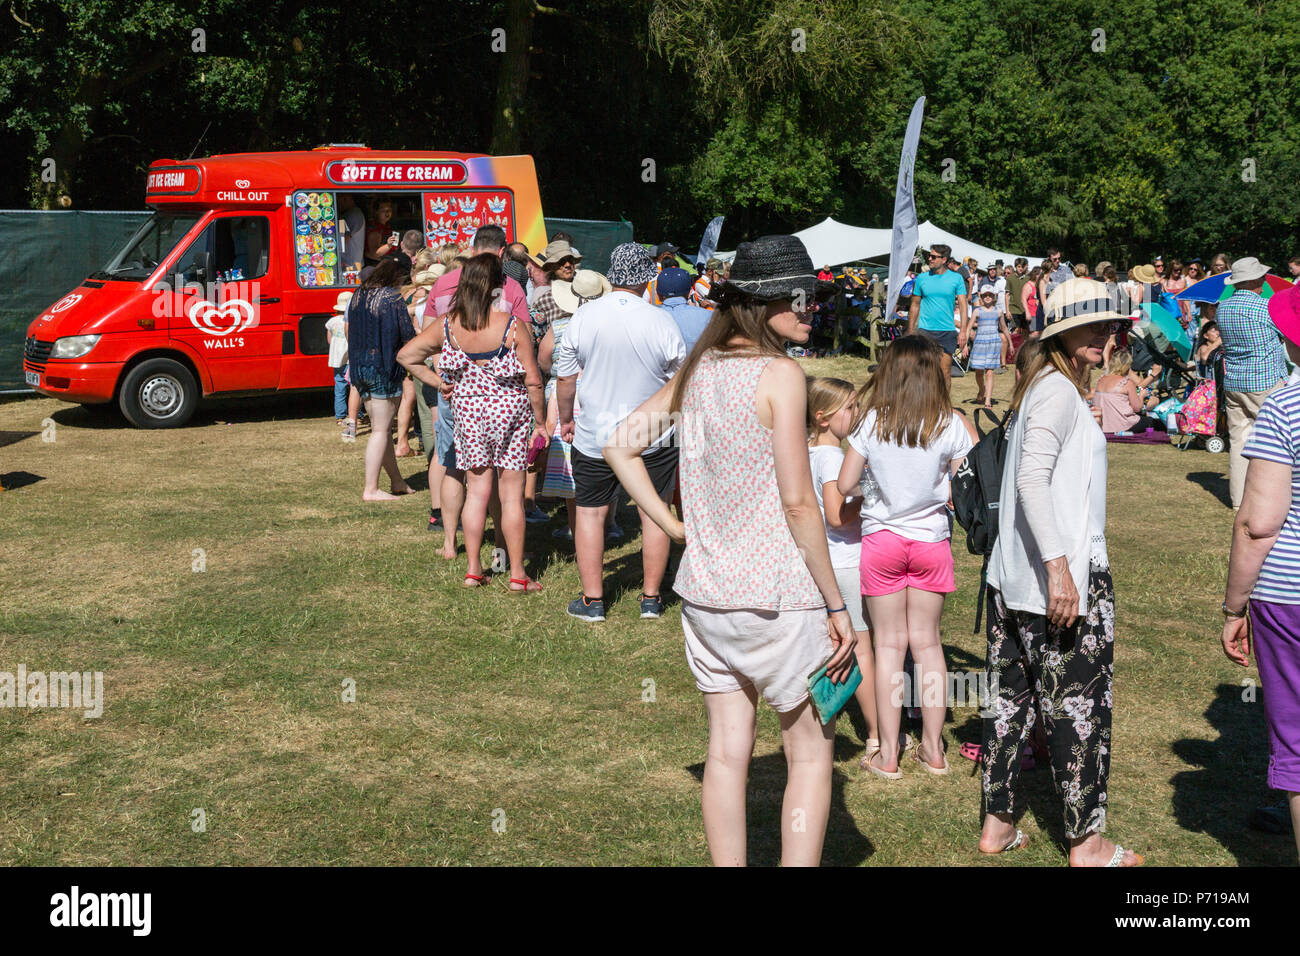 People queuing for ice cream in a park, Birmingham UK - Stock Image